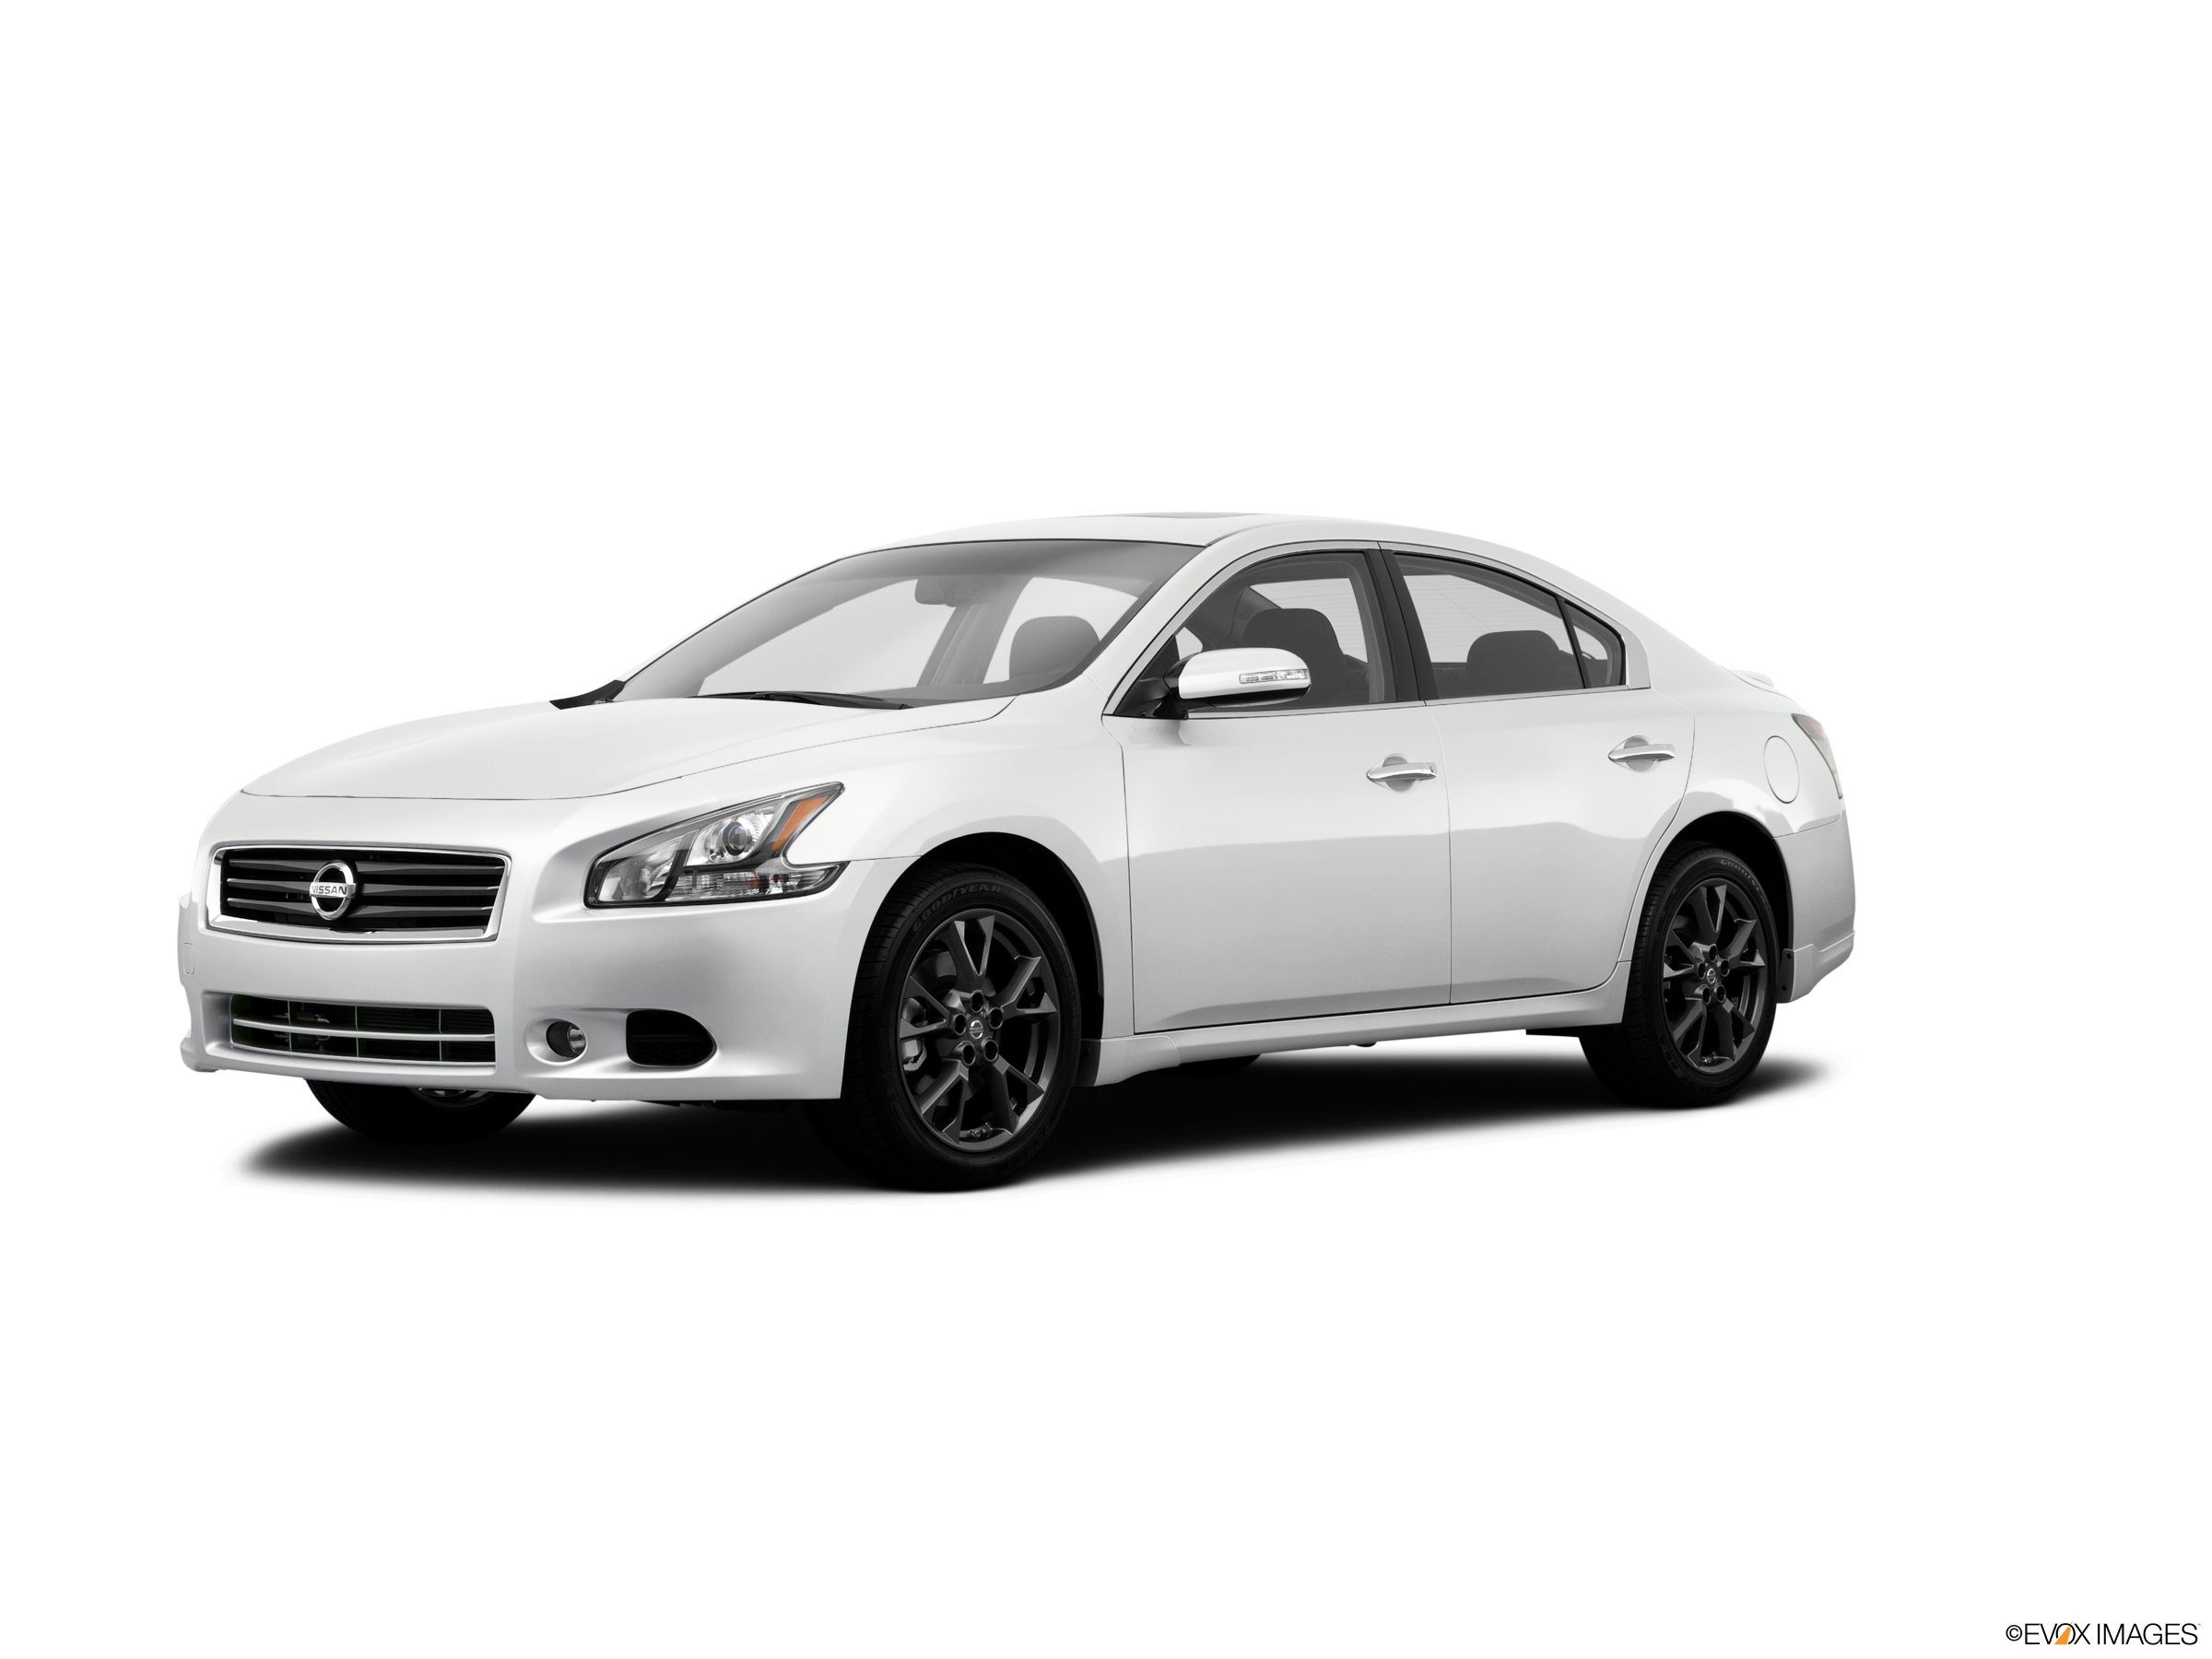 2014 Nissan Maxima Values Cars For Sale Kelley Blue Book